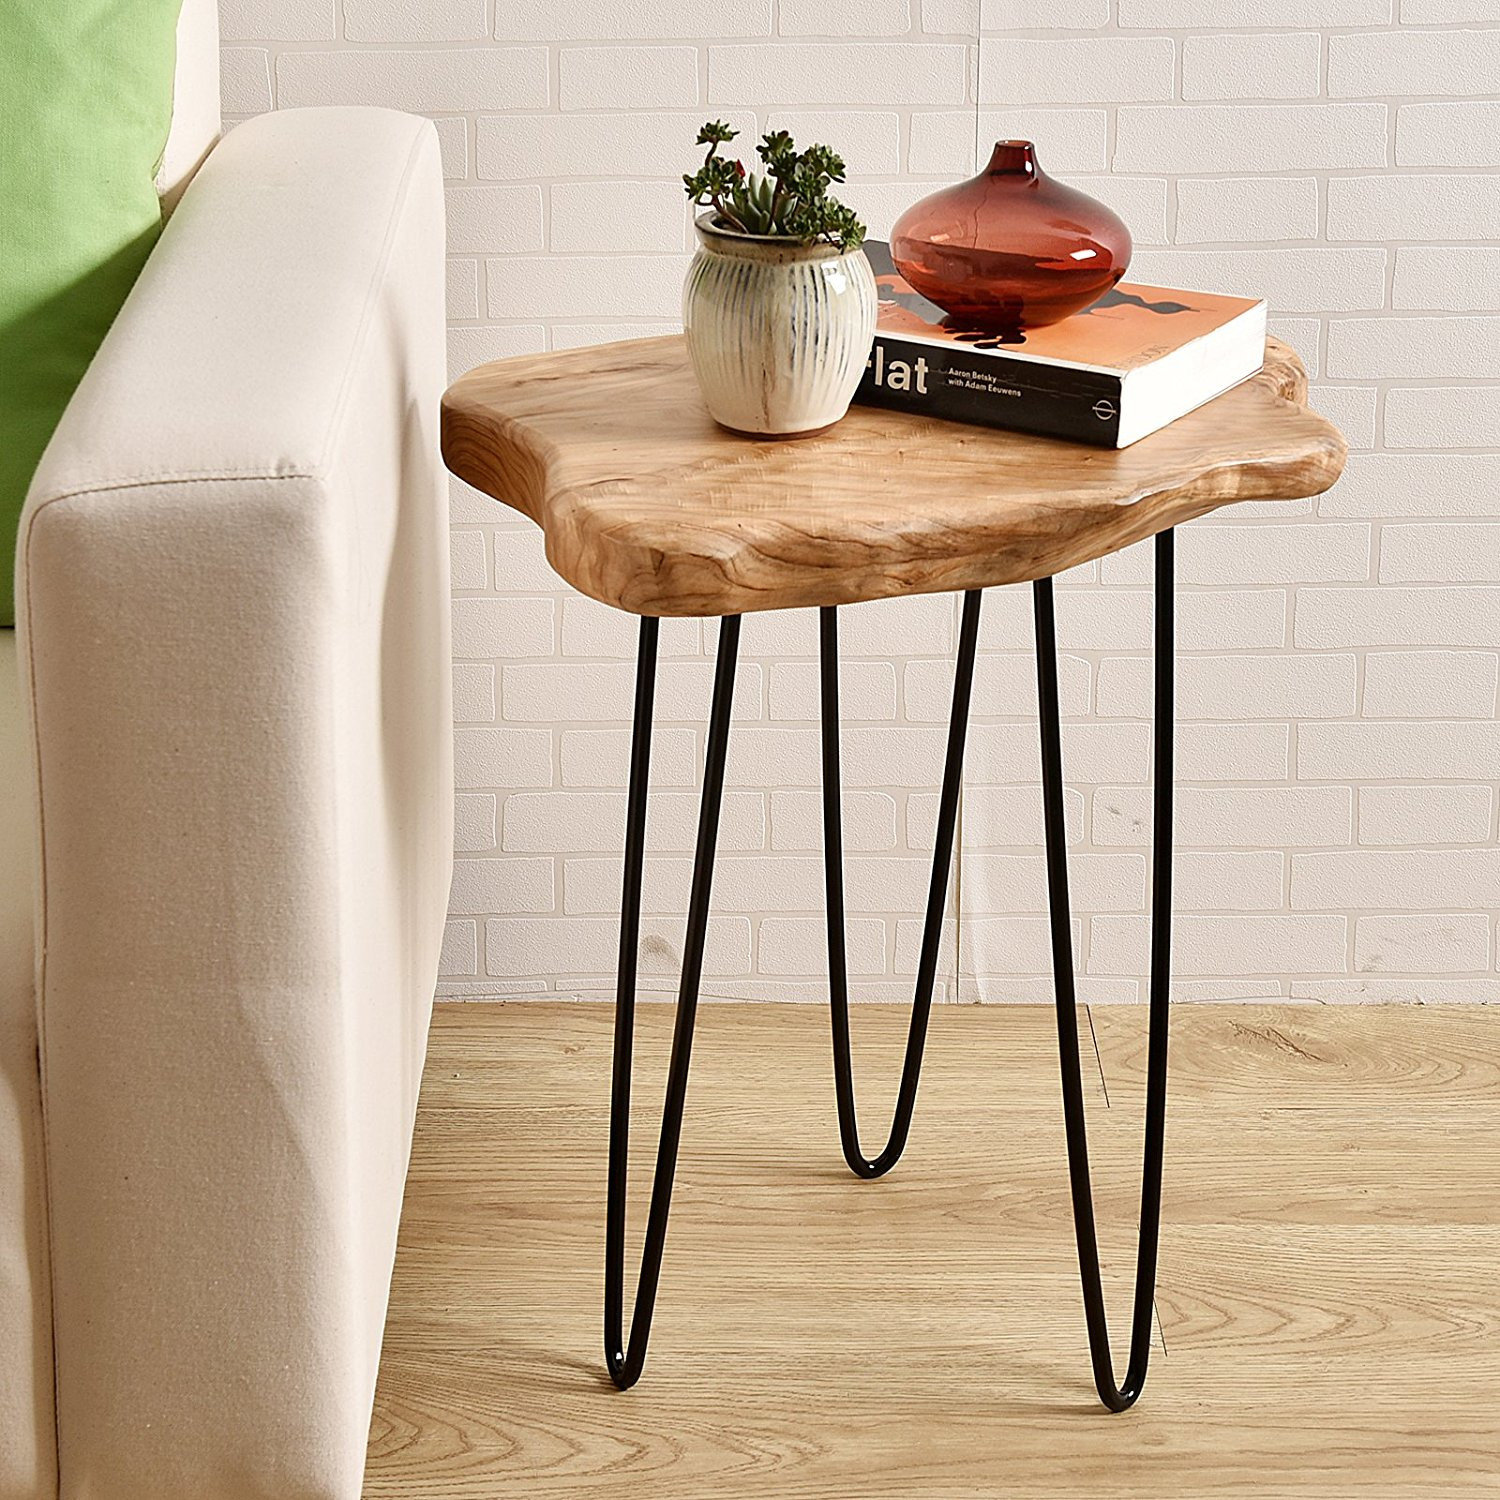 welland industries llc cedar wood end table reviews tables apa furniture unfinished dining chairs with accent oval oak walnut and black gloss outside fire pits marble silver side